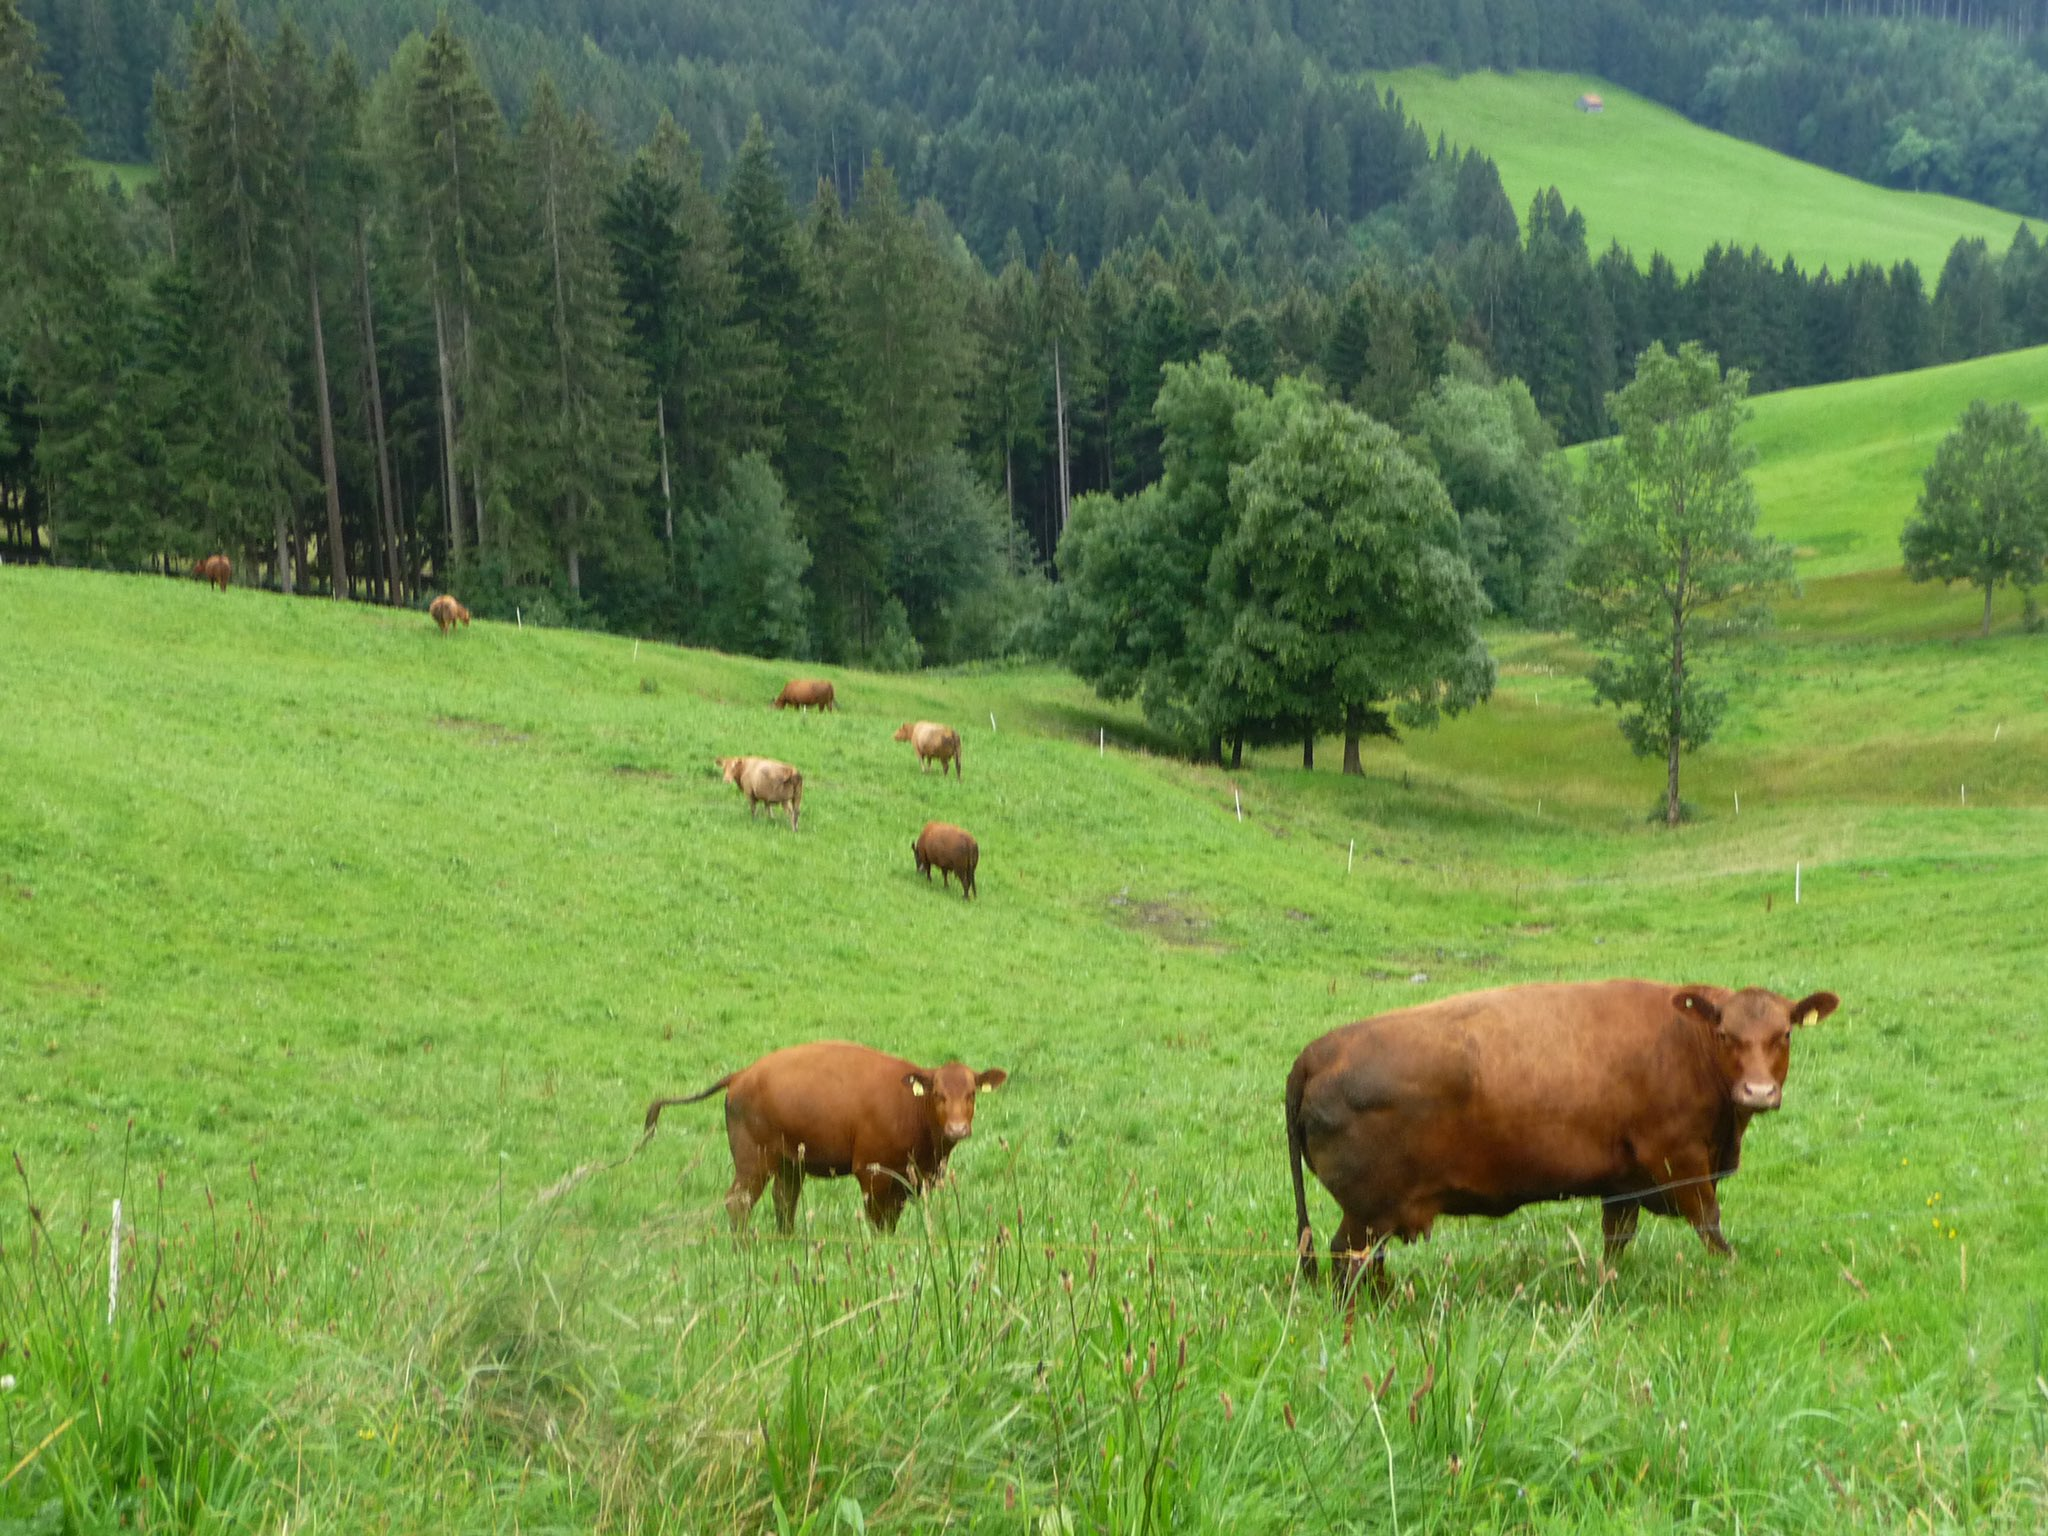 Here are some cows in Appenzell especially for @lesvachesdutour #sbstdf goes to Suisse 🇨🇭🚴 https://t.co/mTNFThVA0s